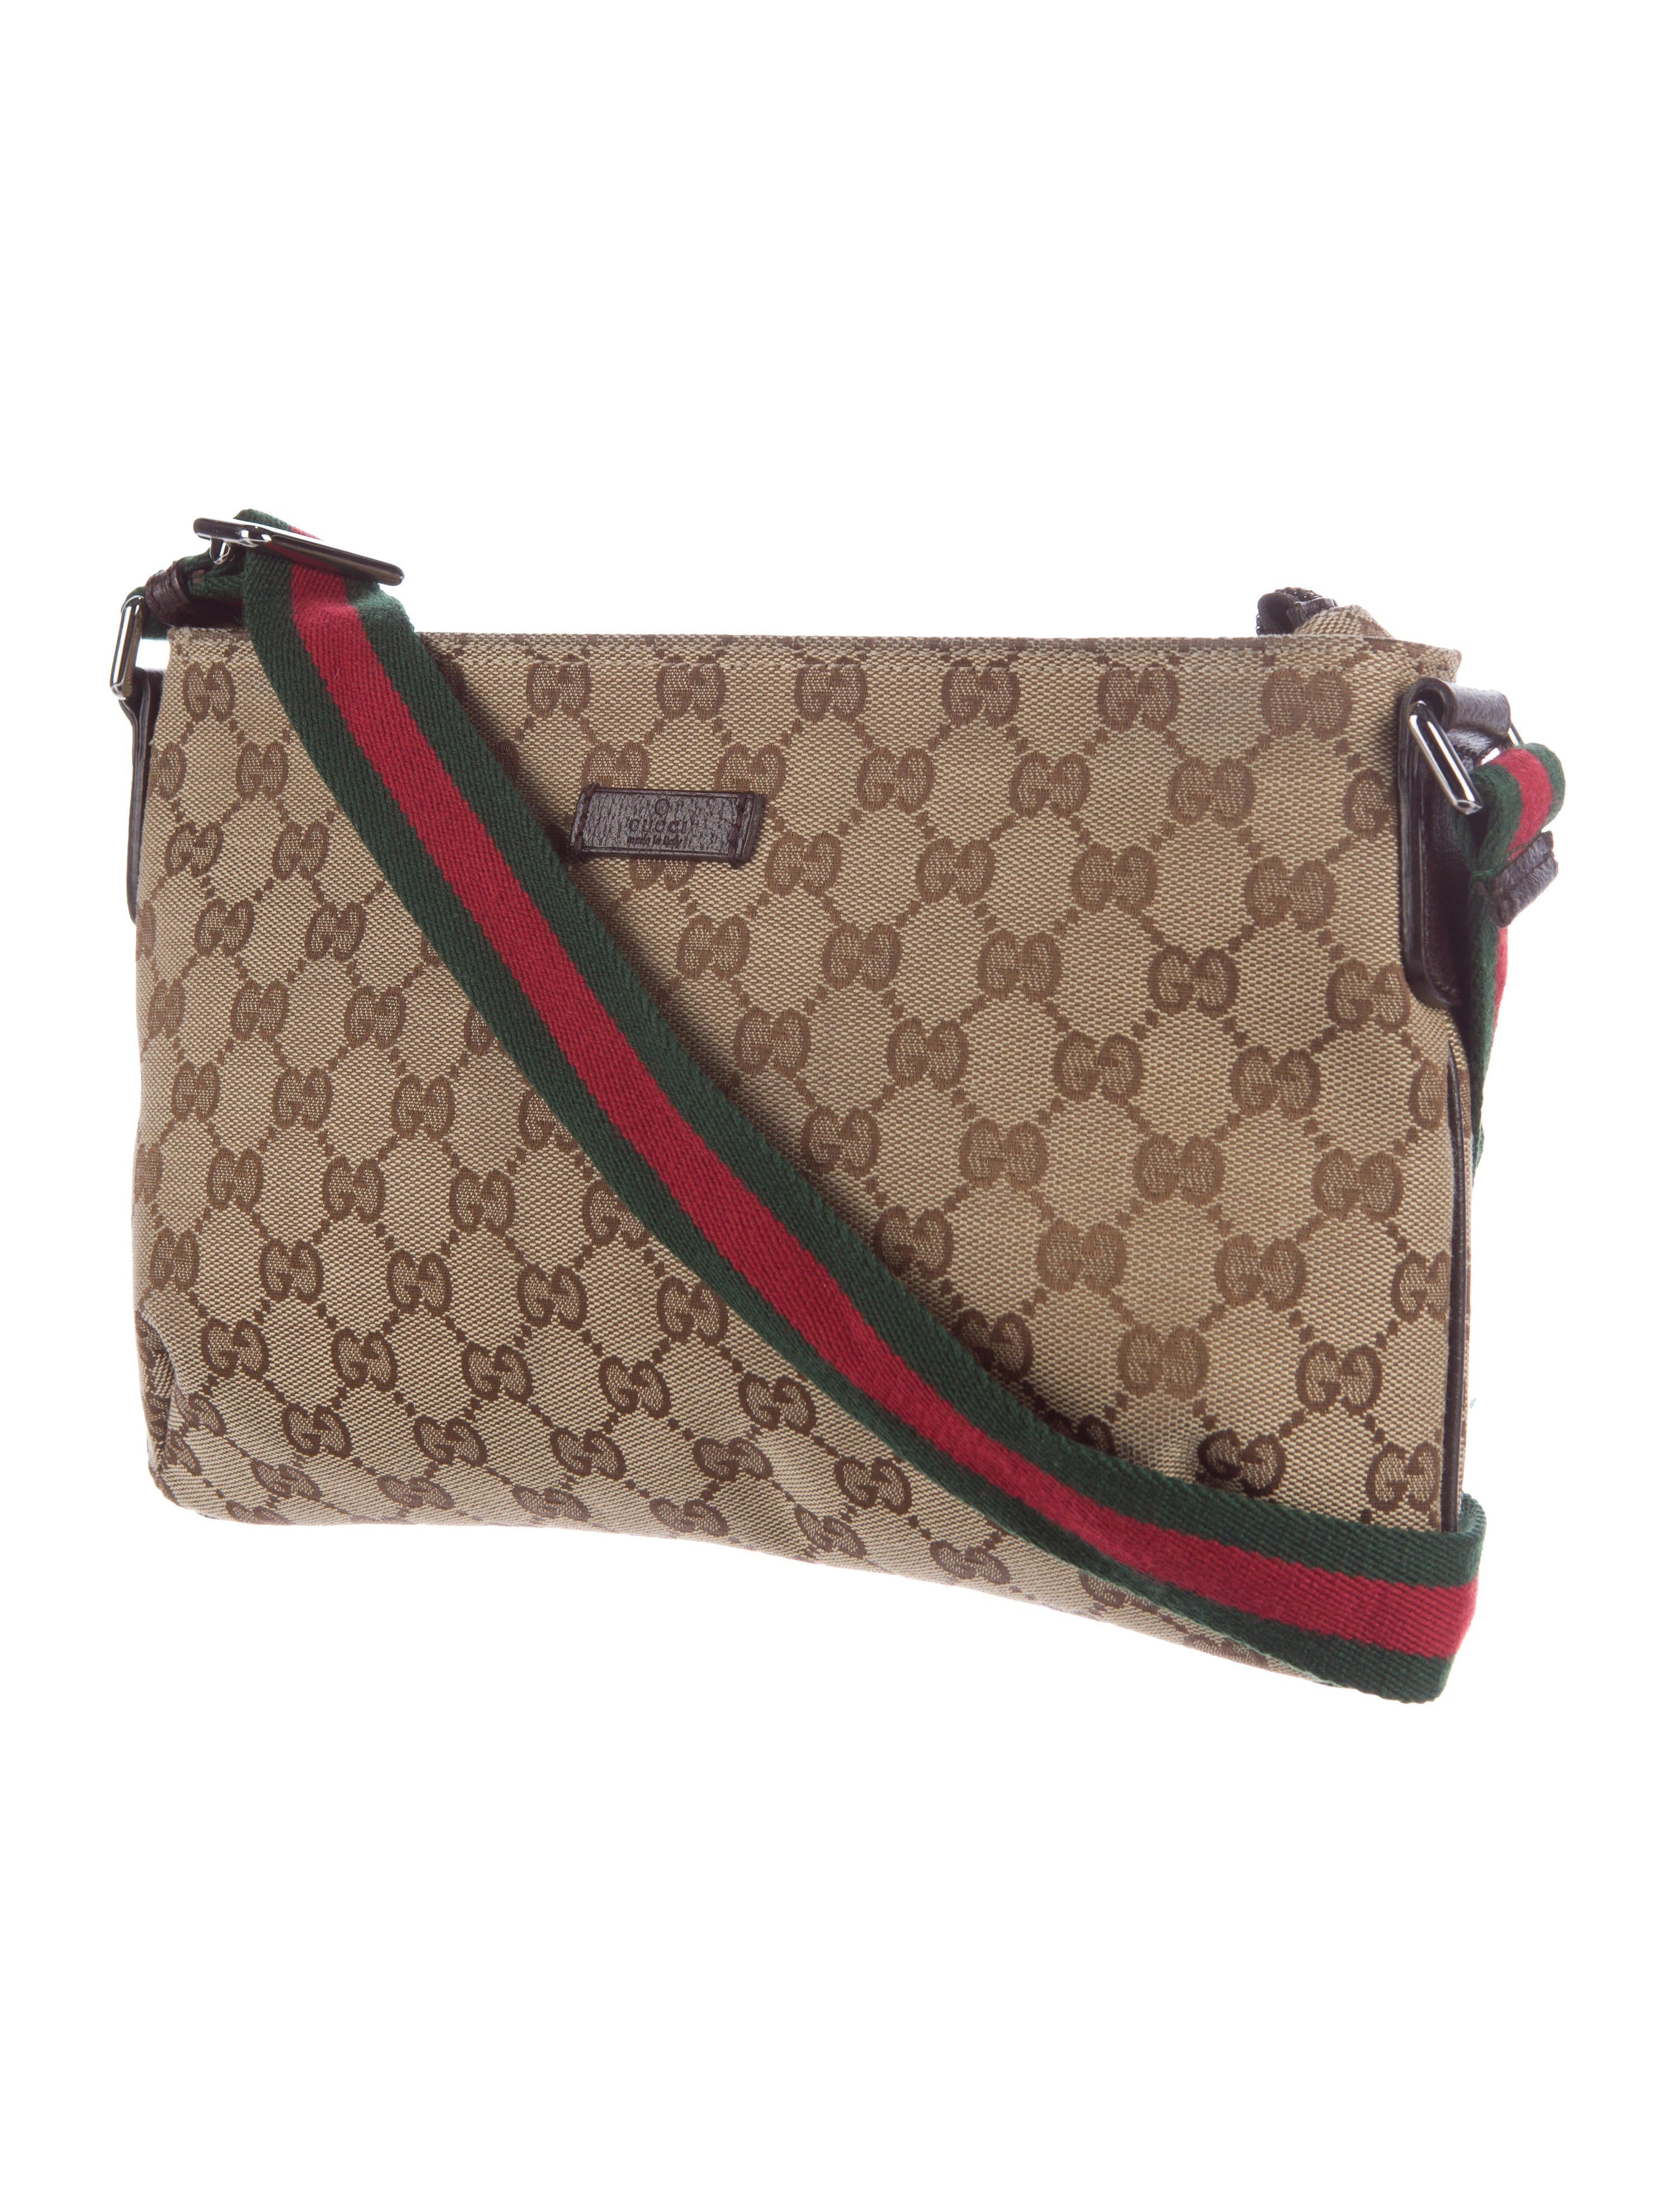 da39fbc51 Gucci Crossbody Bag | Stanford Center for Opportunity Policy in ...